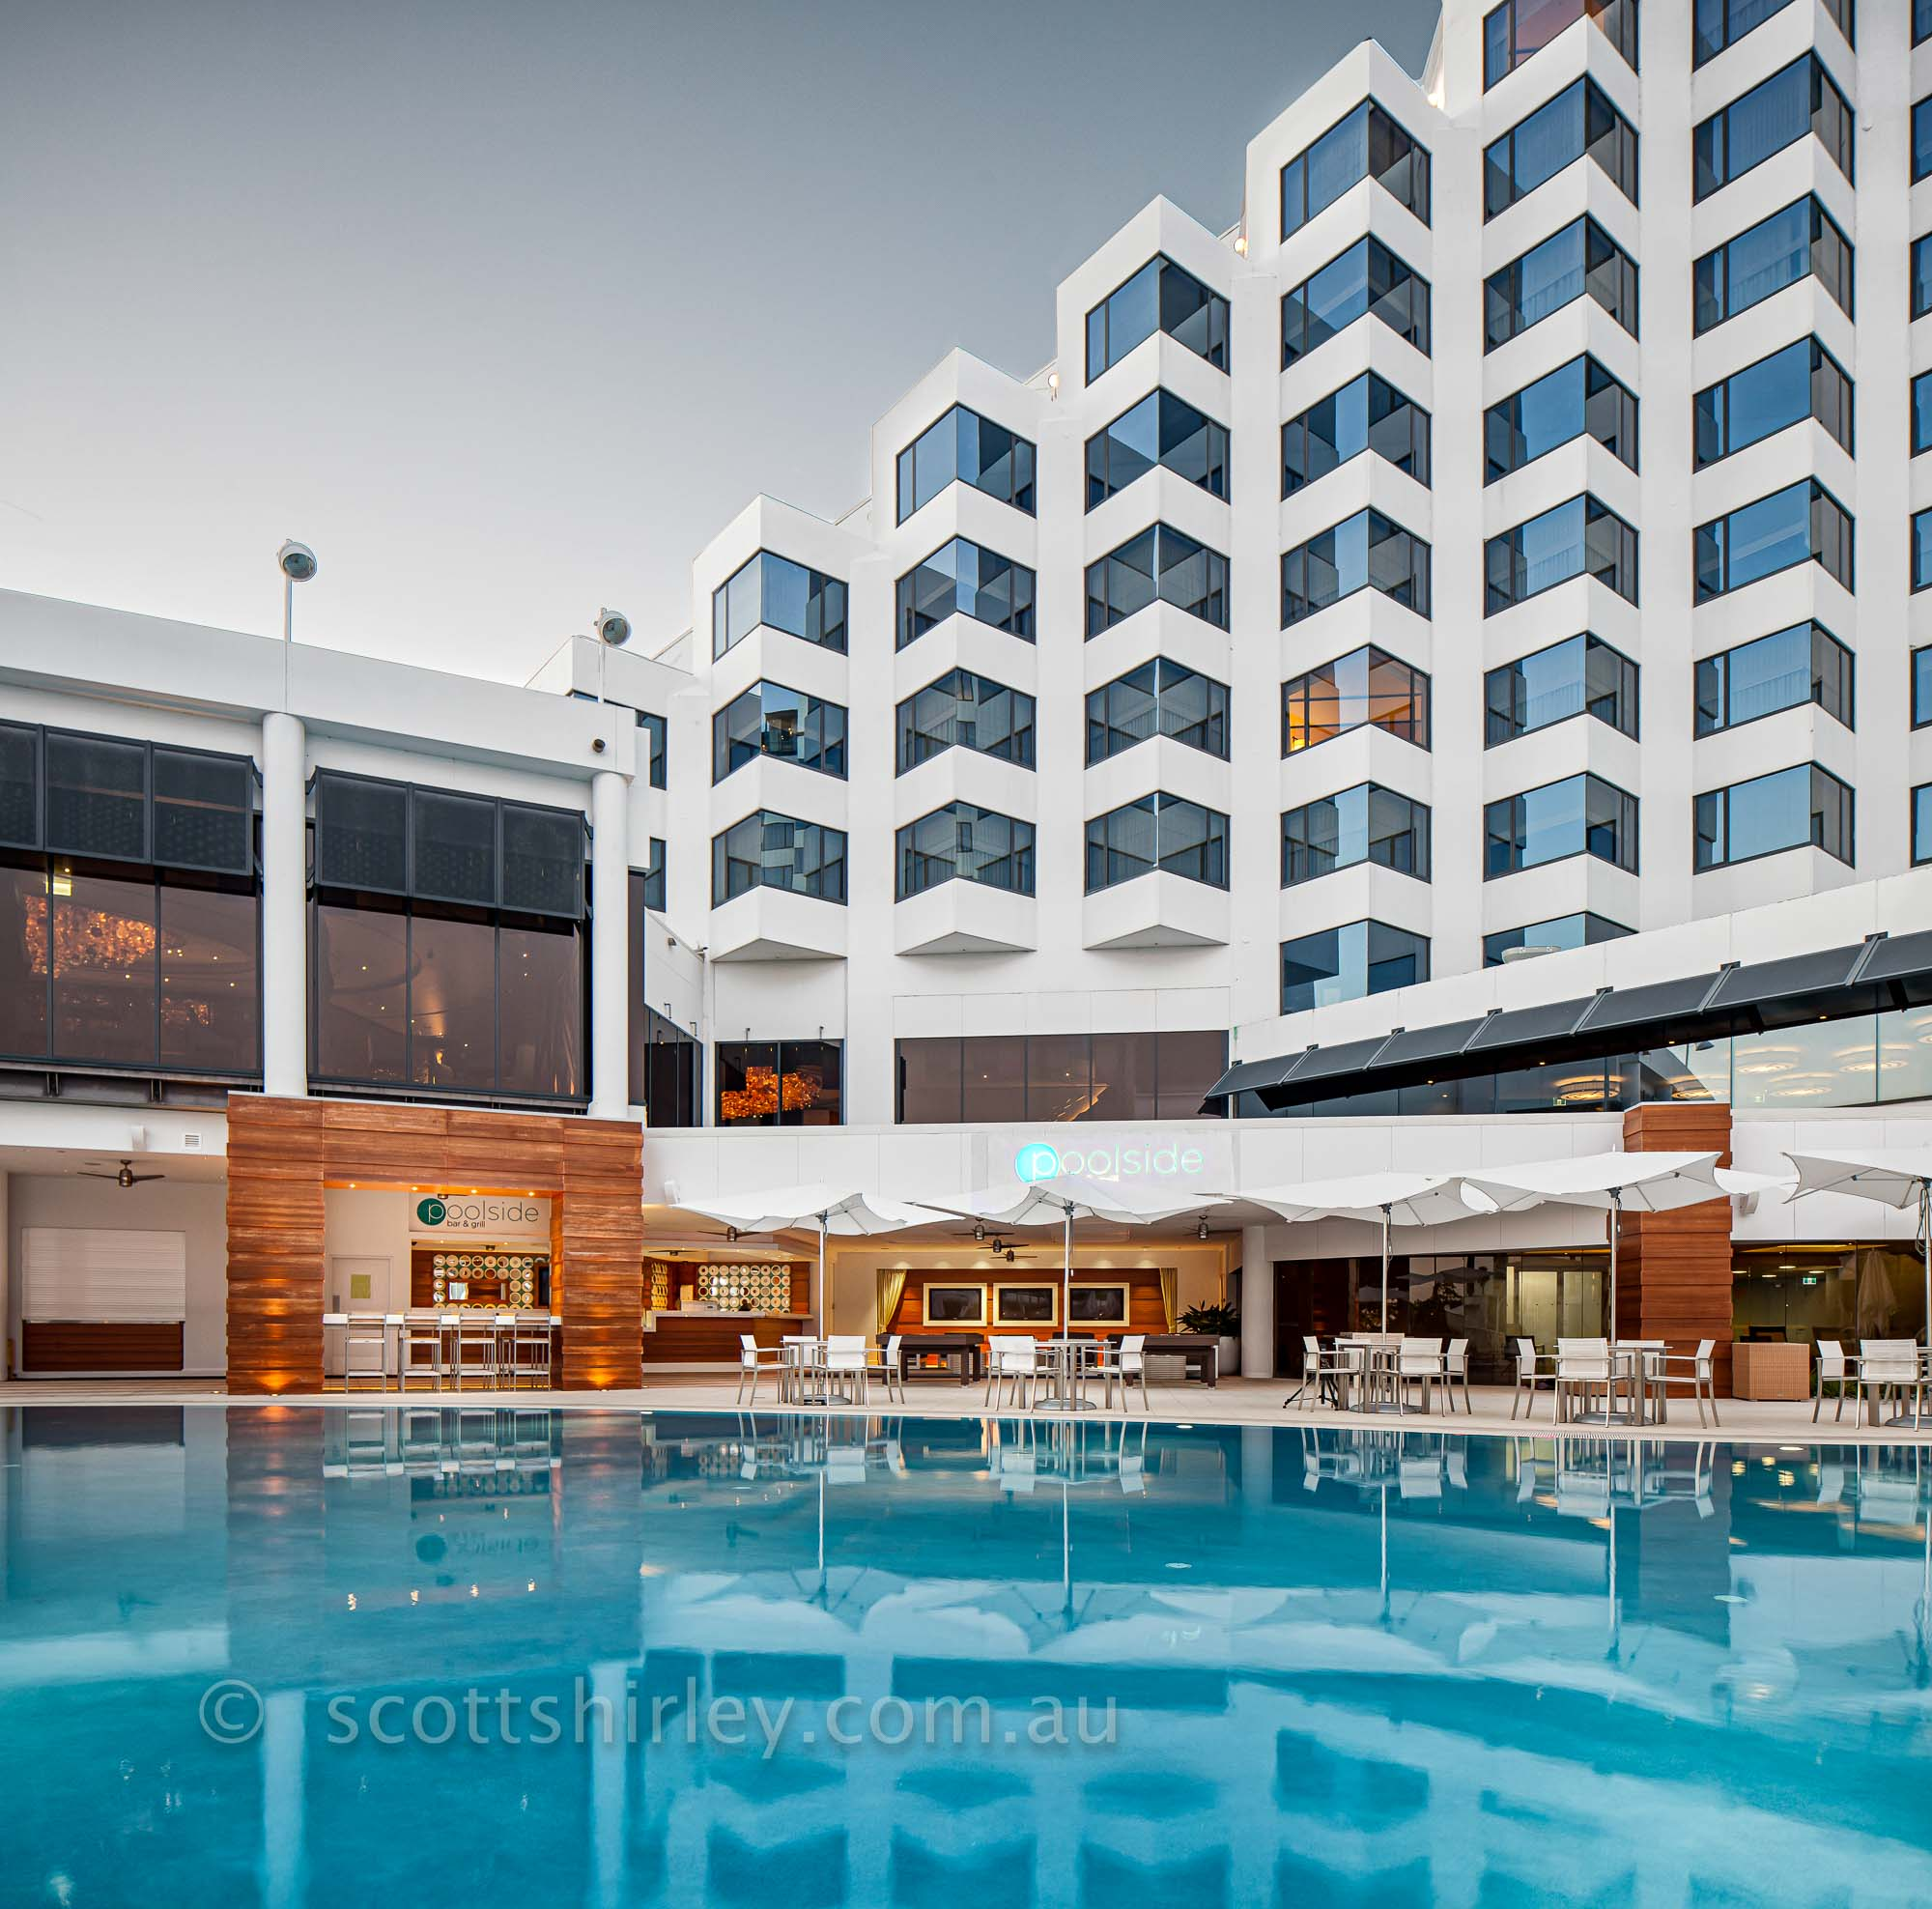 6056_Poolside_Bar_Crown_Perth_2